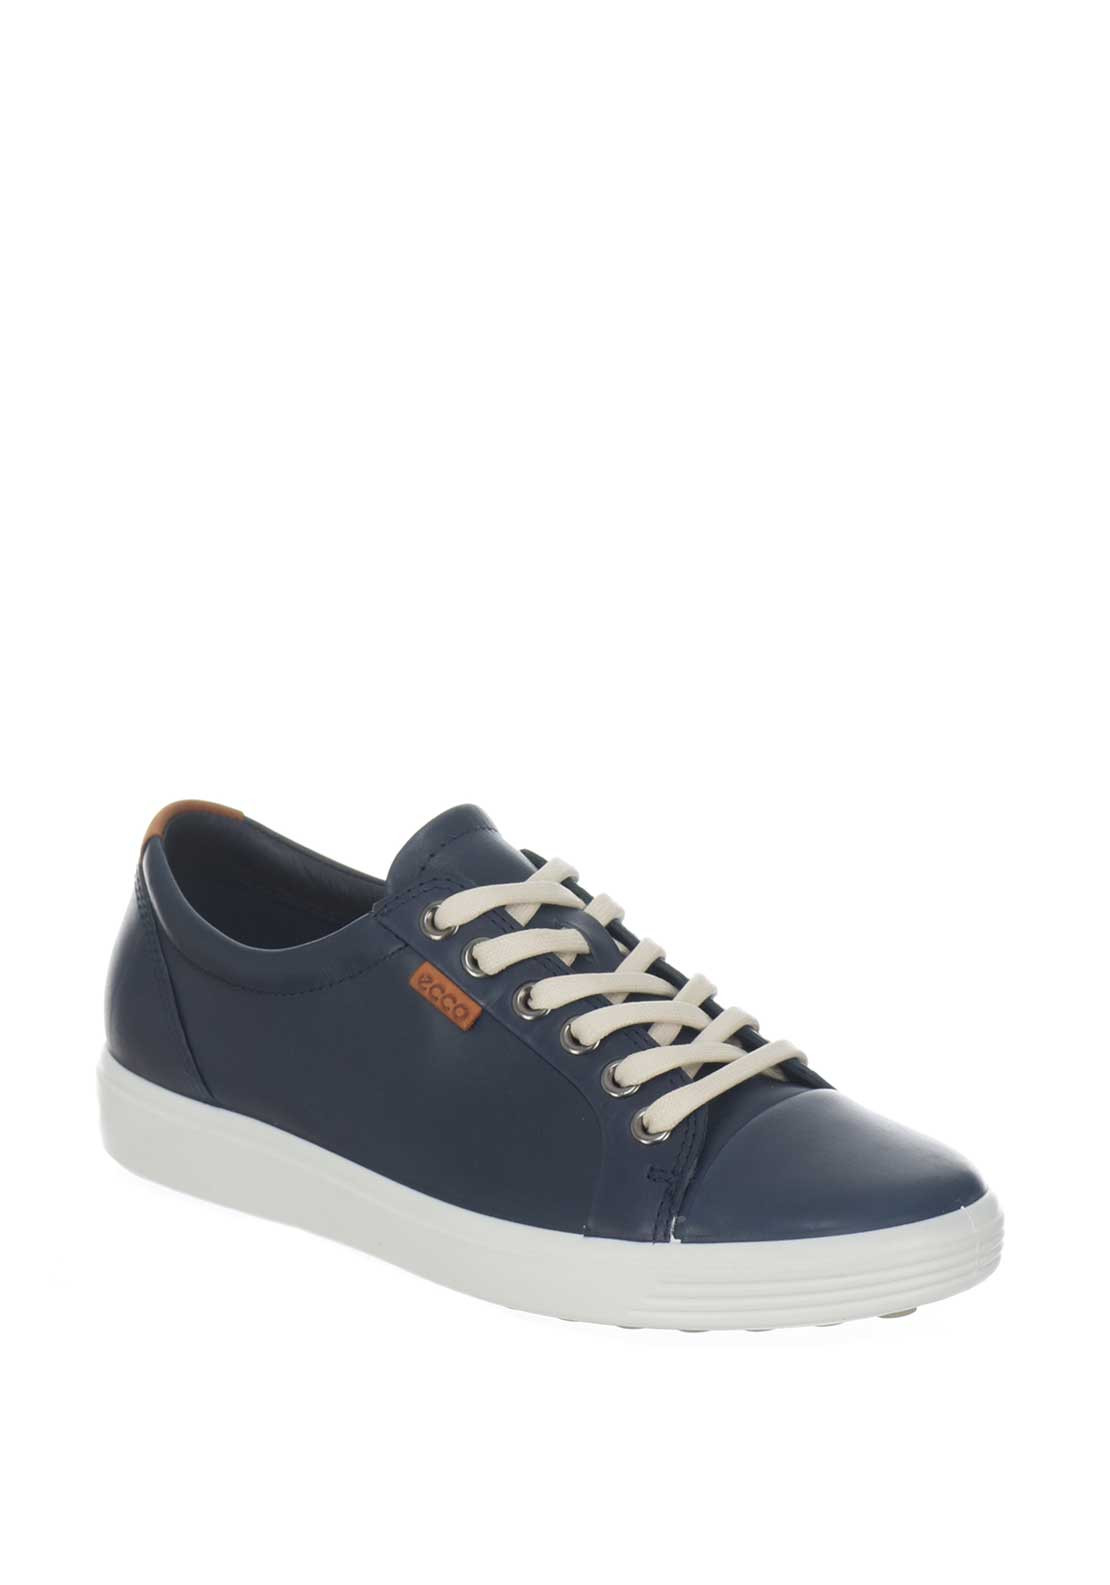 Ecco Womens Soft 7 Leather Trainers Marine Mcelhinneys